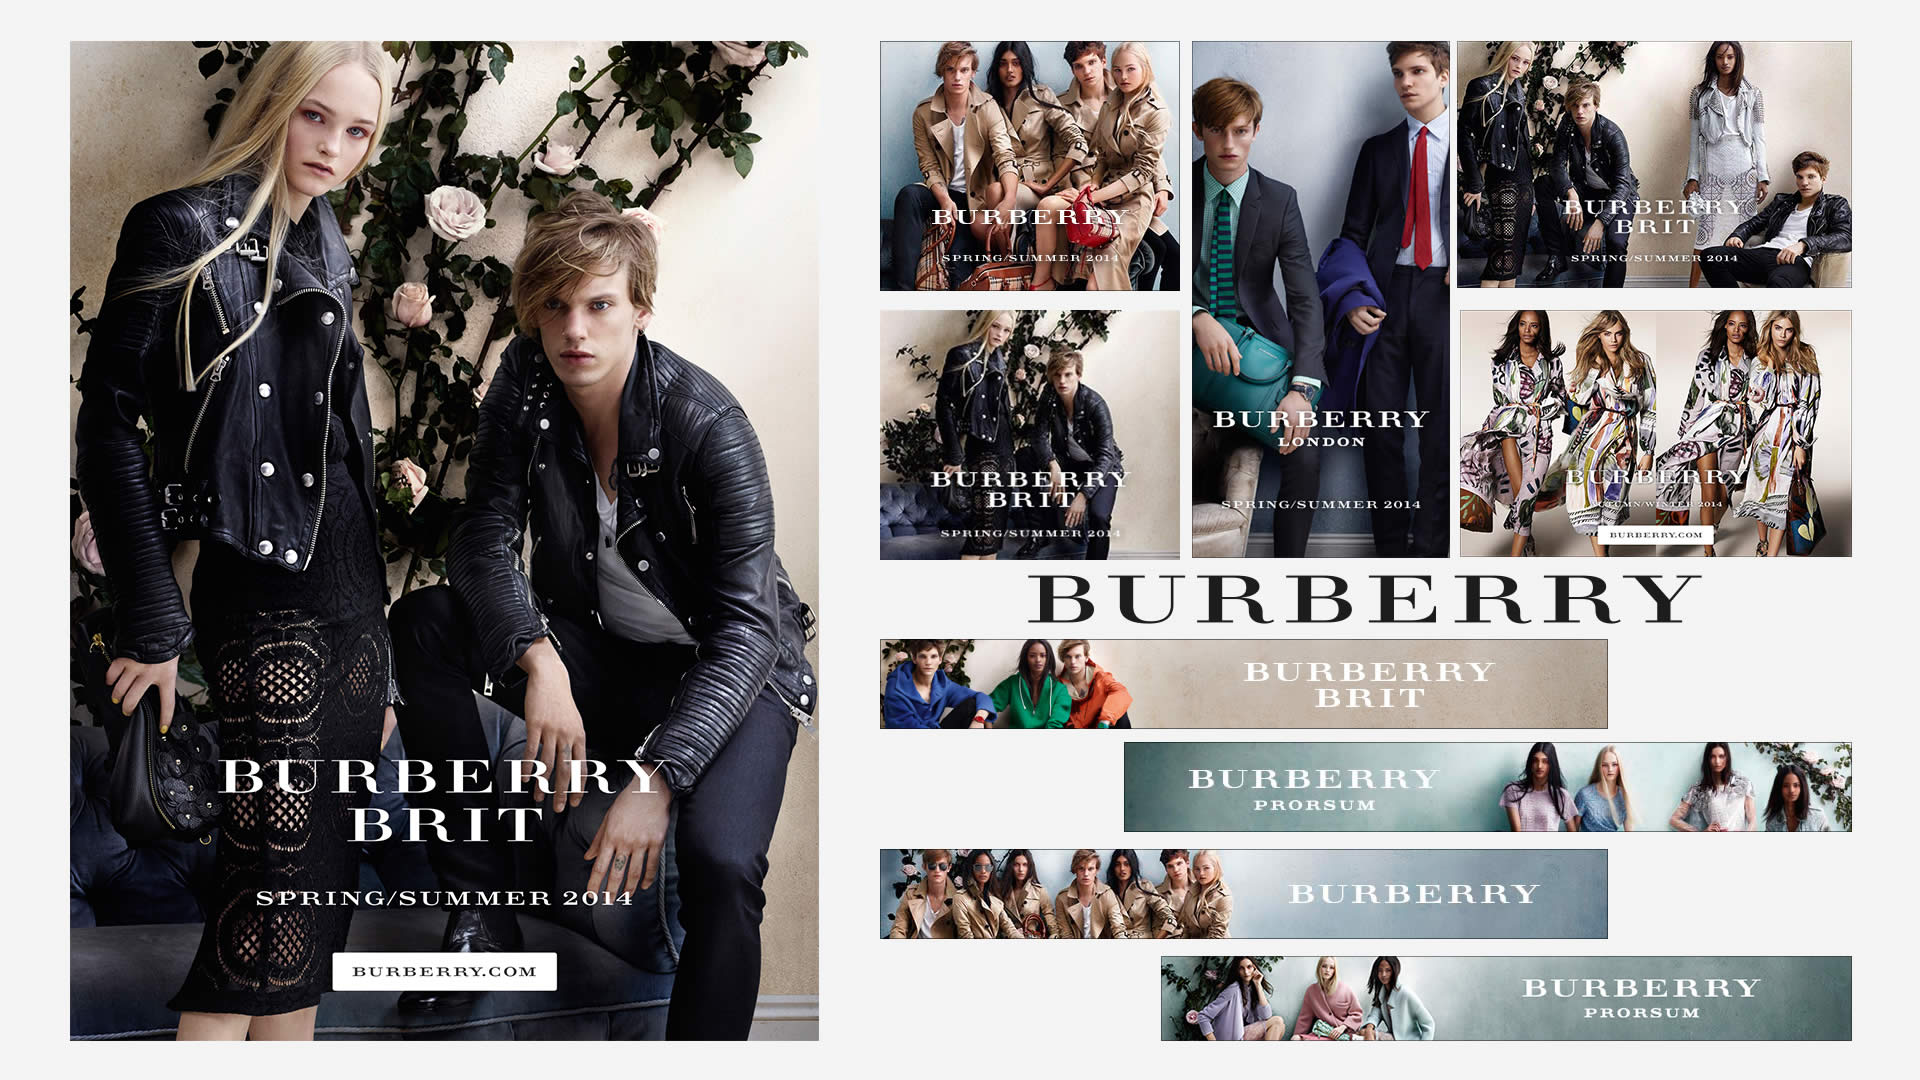 Burberry spring through summer campaign